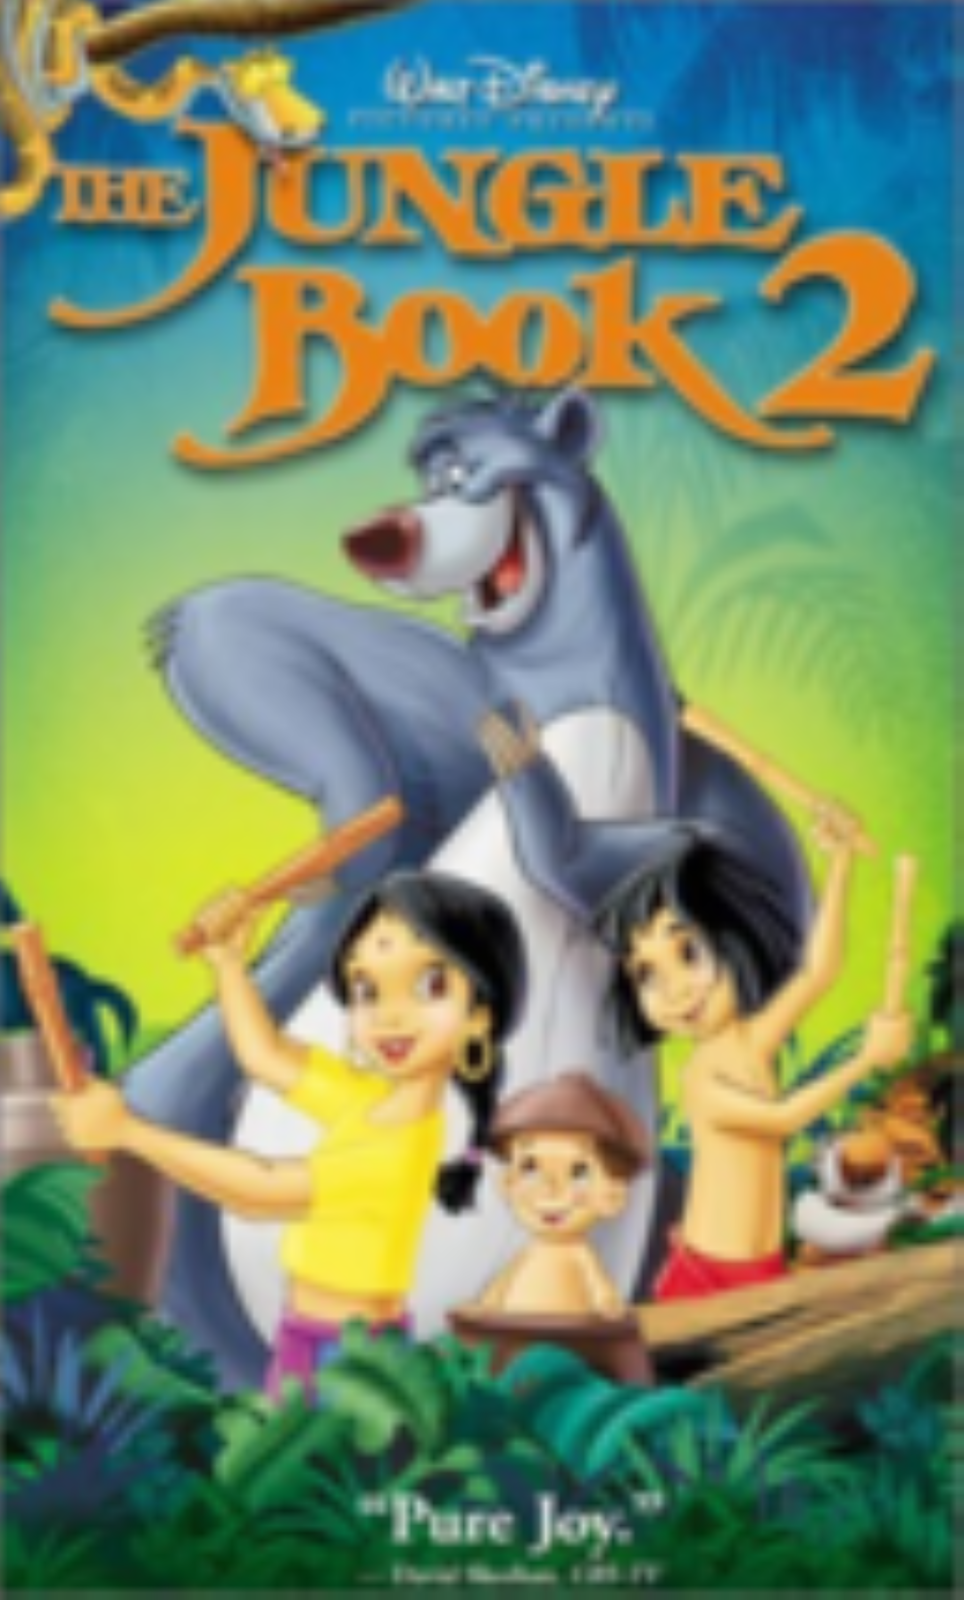 The Jungle Book 2 Vhs